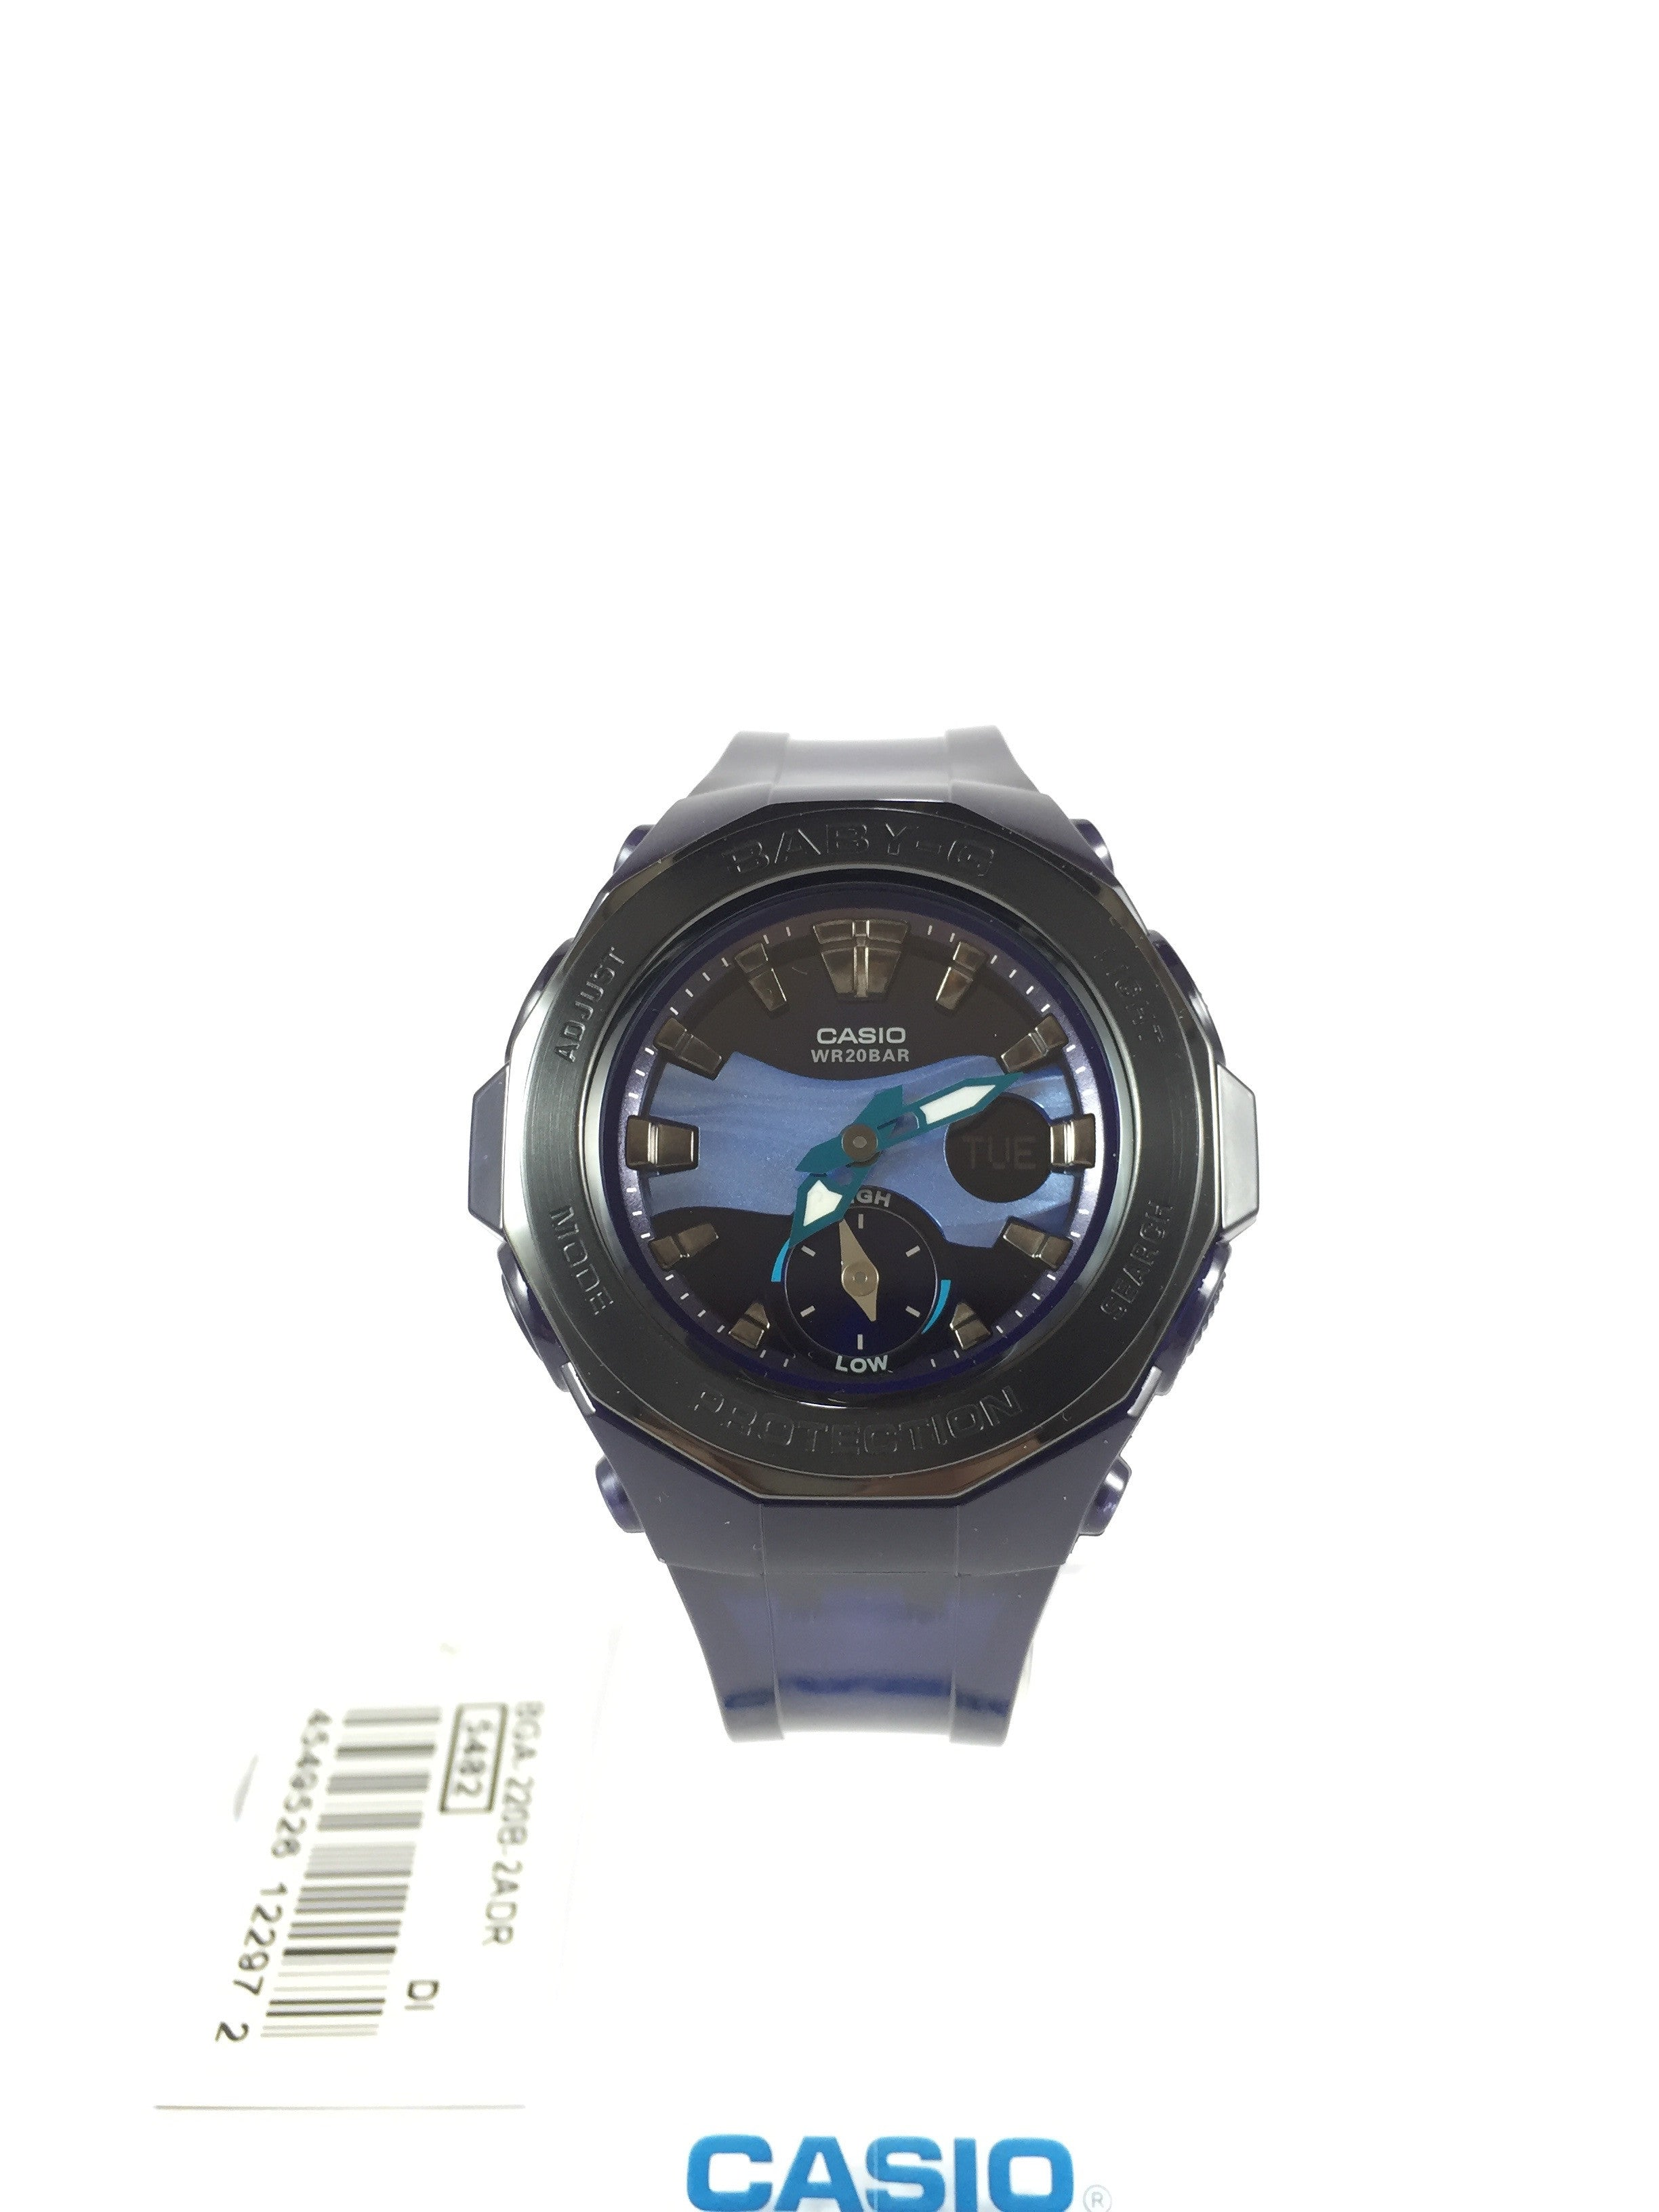 men strap blue lcd watch running chronograph buy online winghead watches shark steel alarm quartz stainless sport product digital date buying analog clock